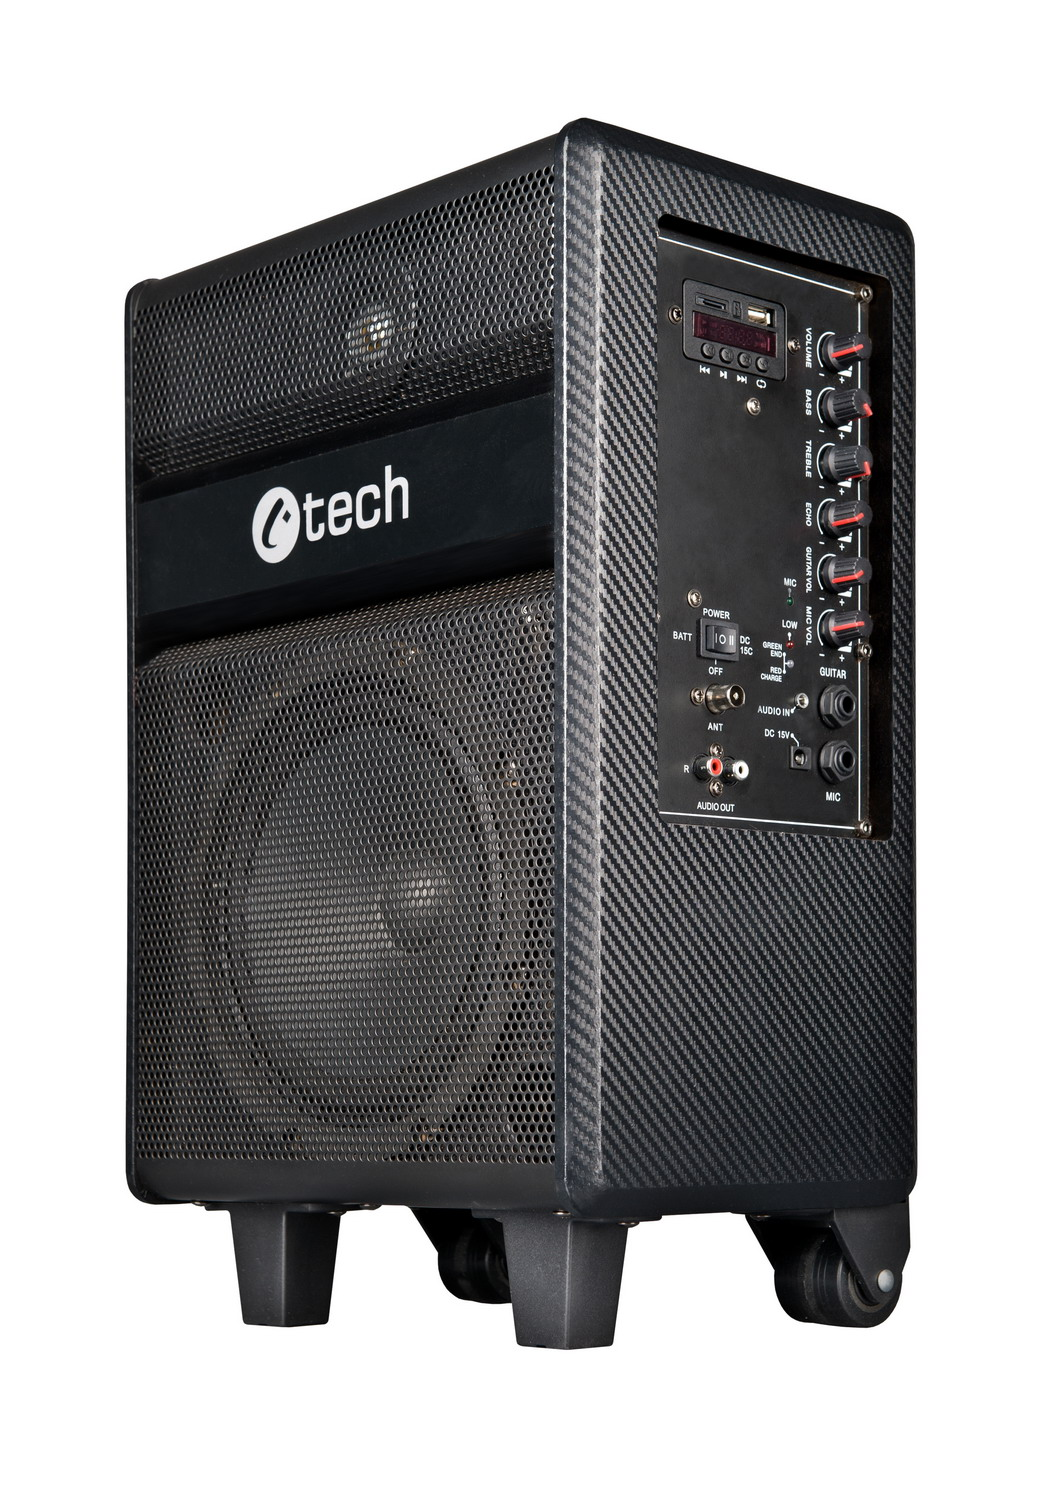 repro C-TECH Impressio Party, all-in-one, 35W, PMPO 300W